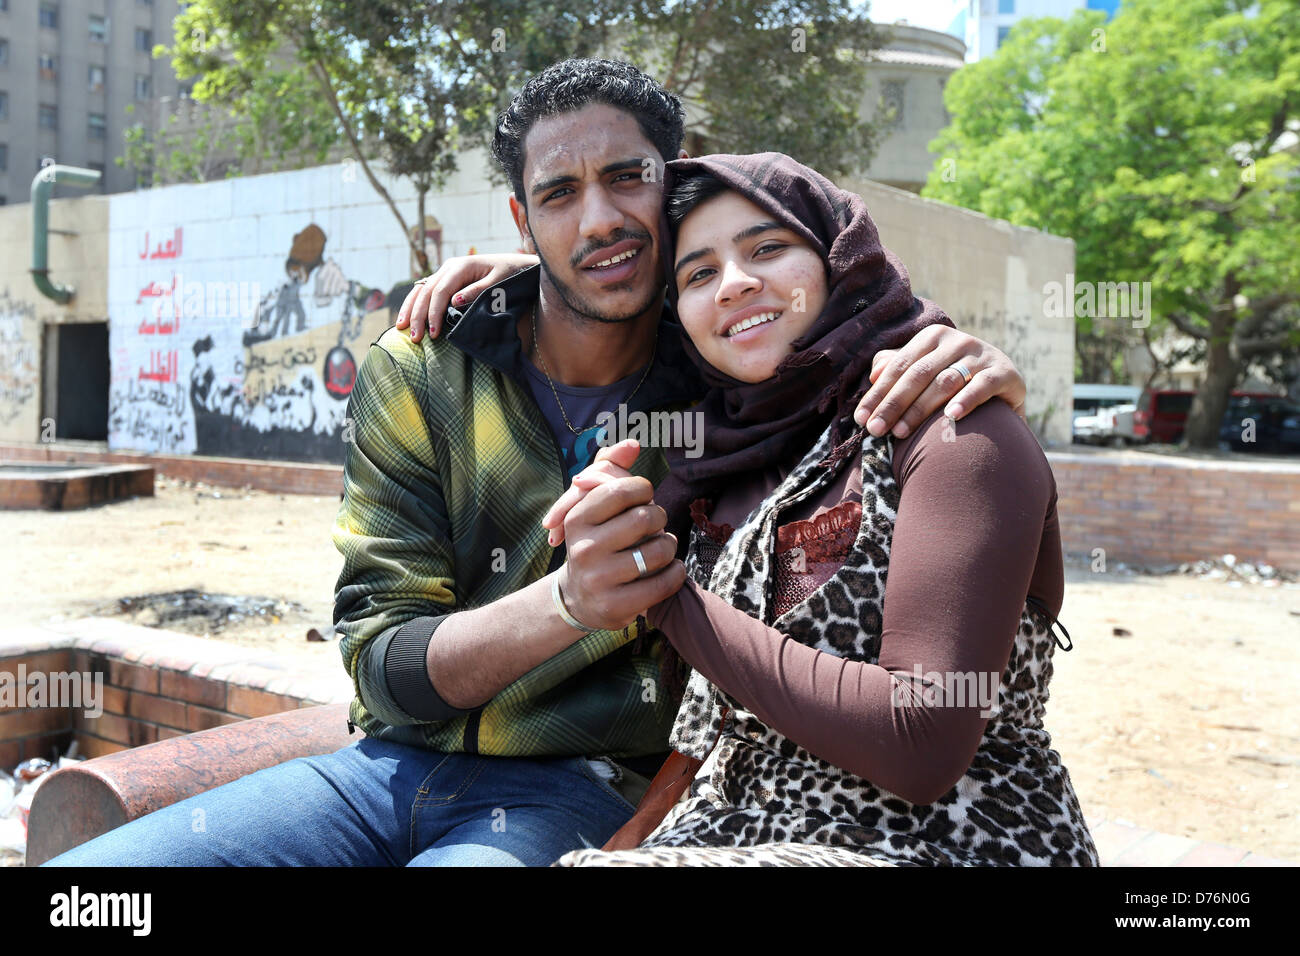 young married couple holding hands, Tahrir Square, Cairo, Egypt - Stock Image